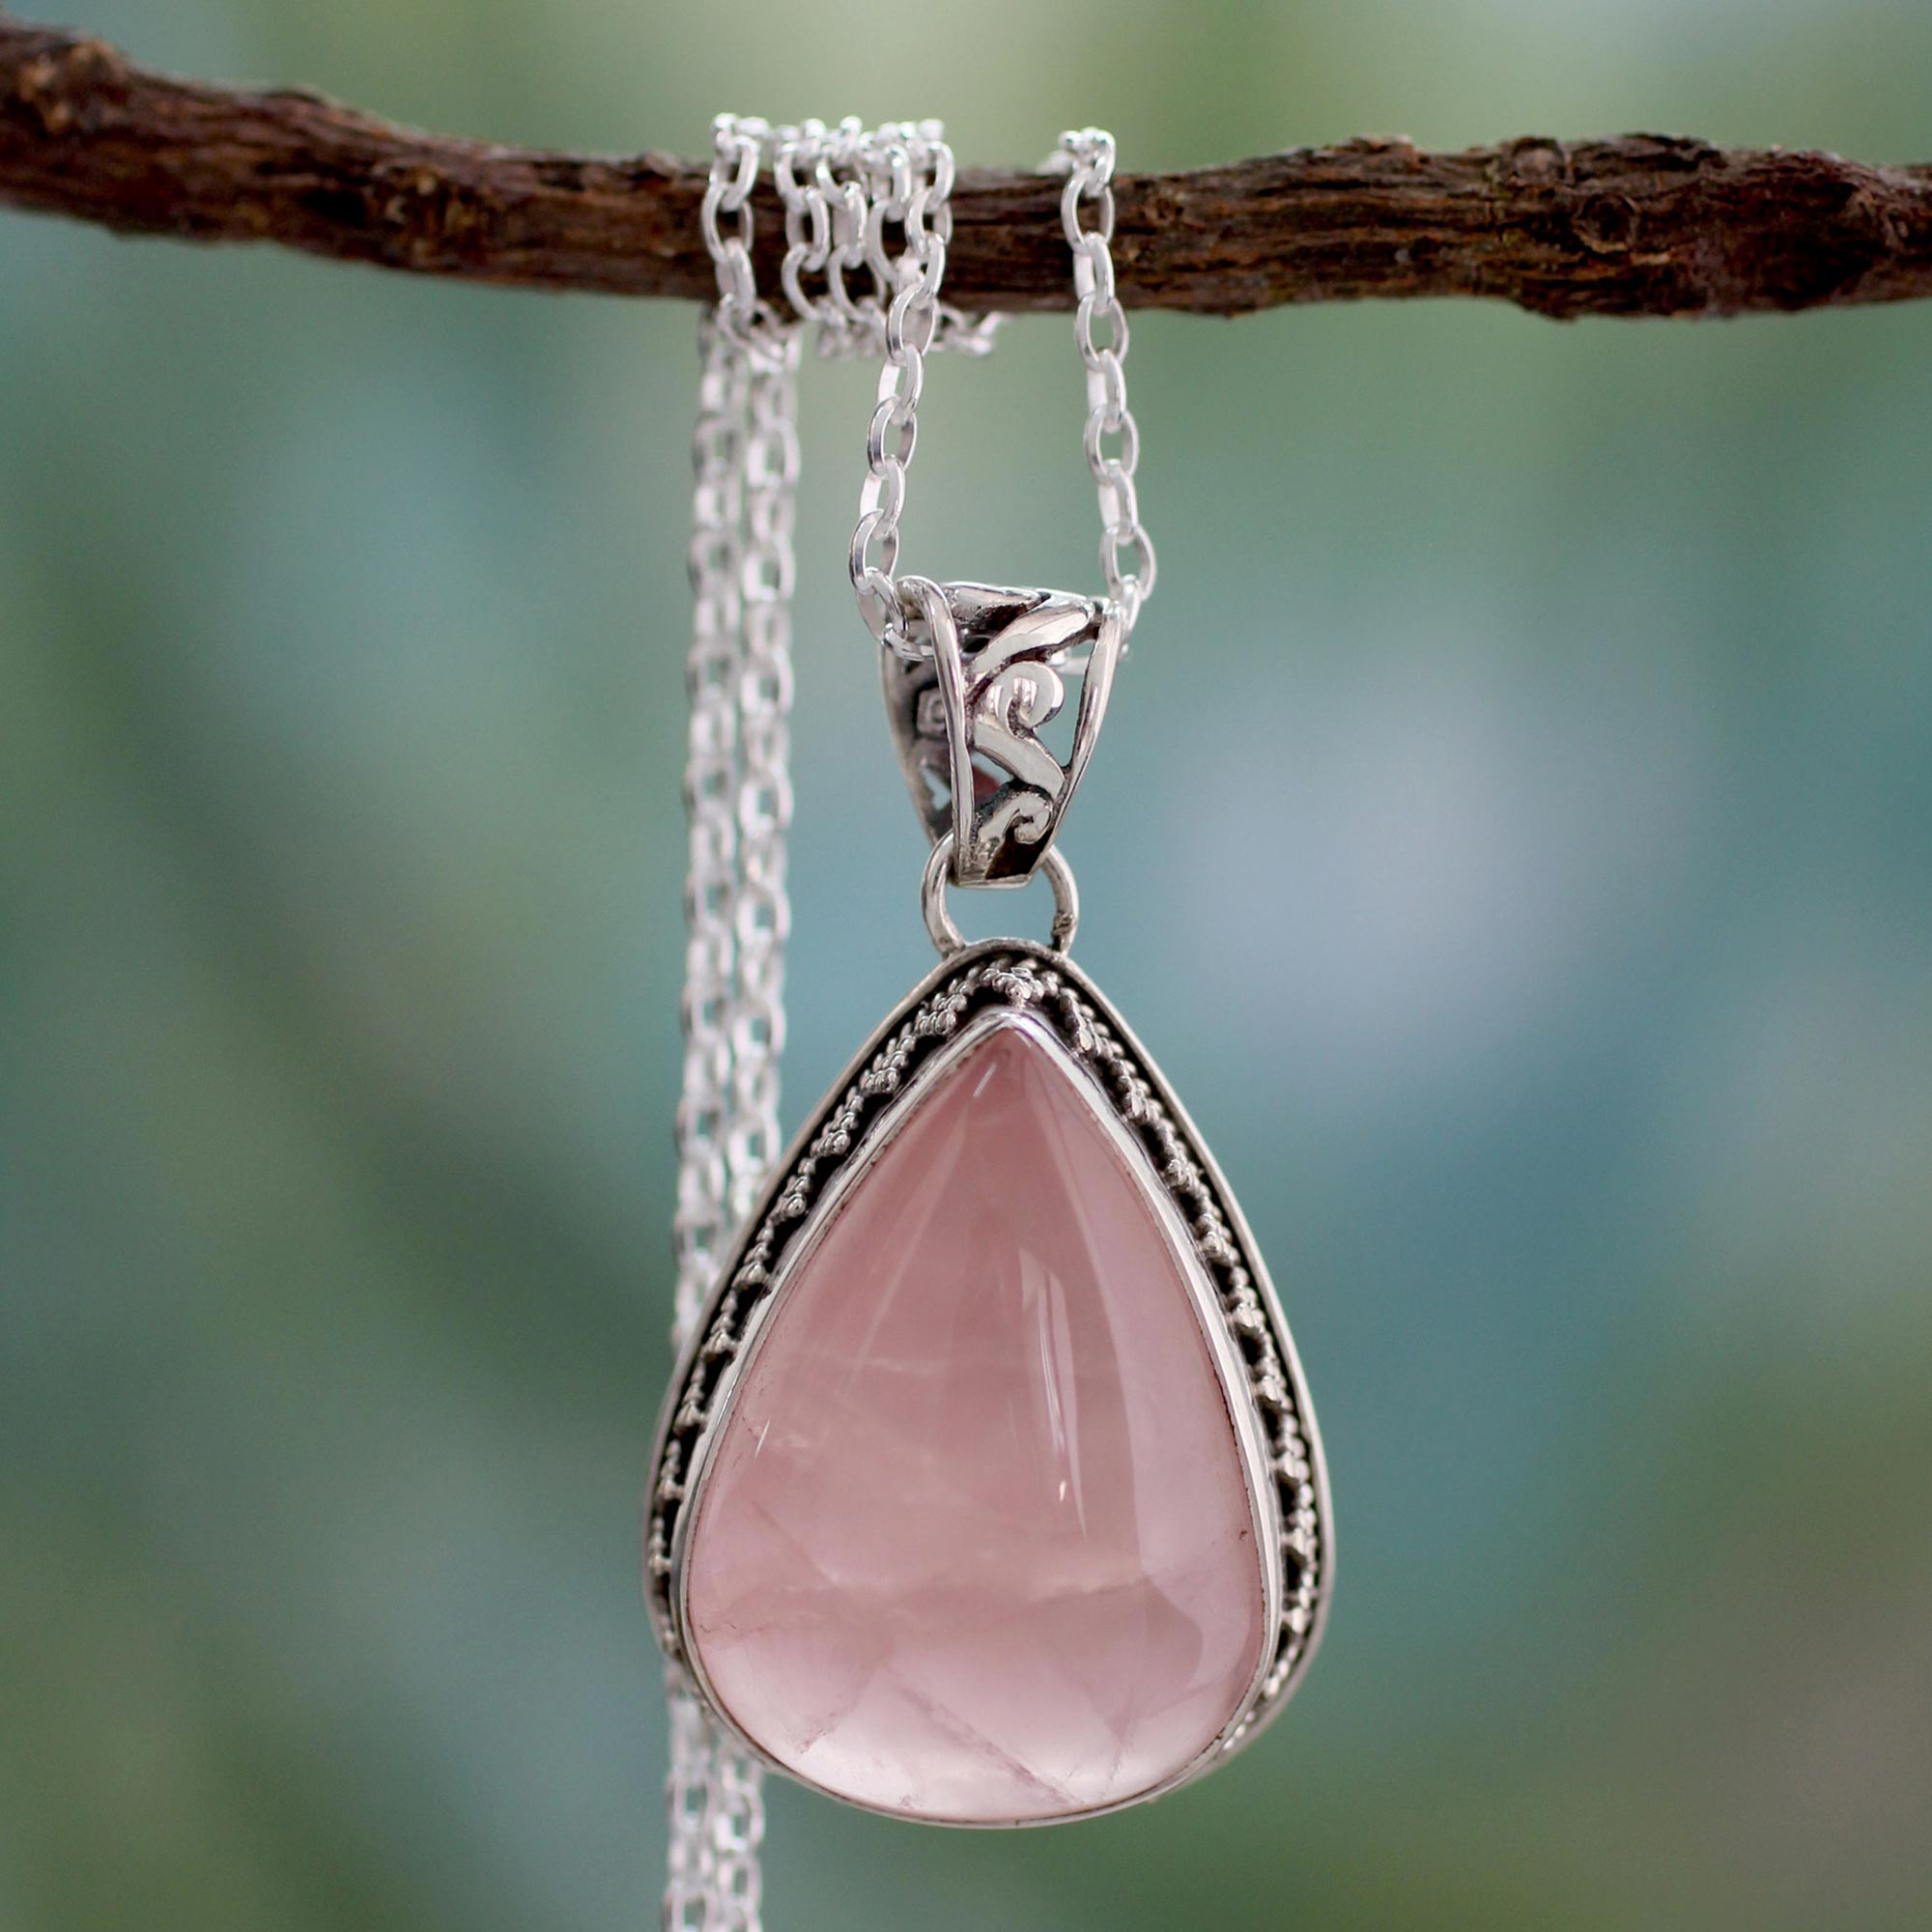 A delightful Silver plated chain Necklace with Pink-Rose quartz gemstone